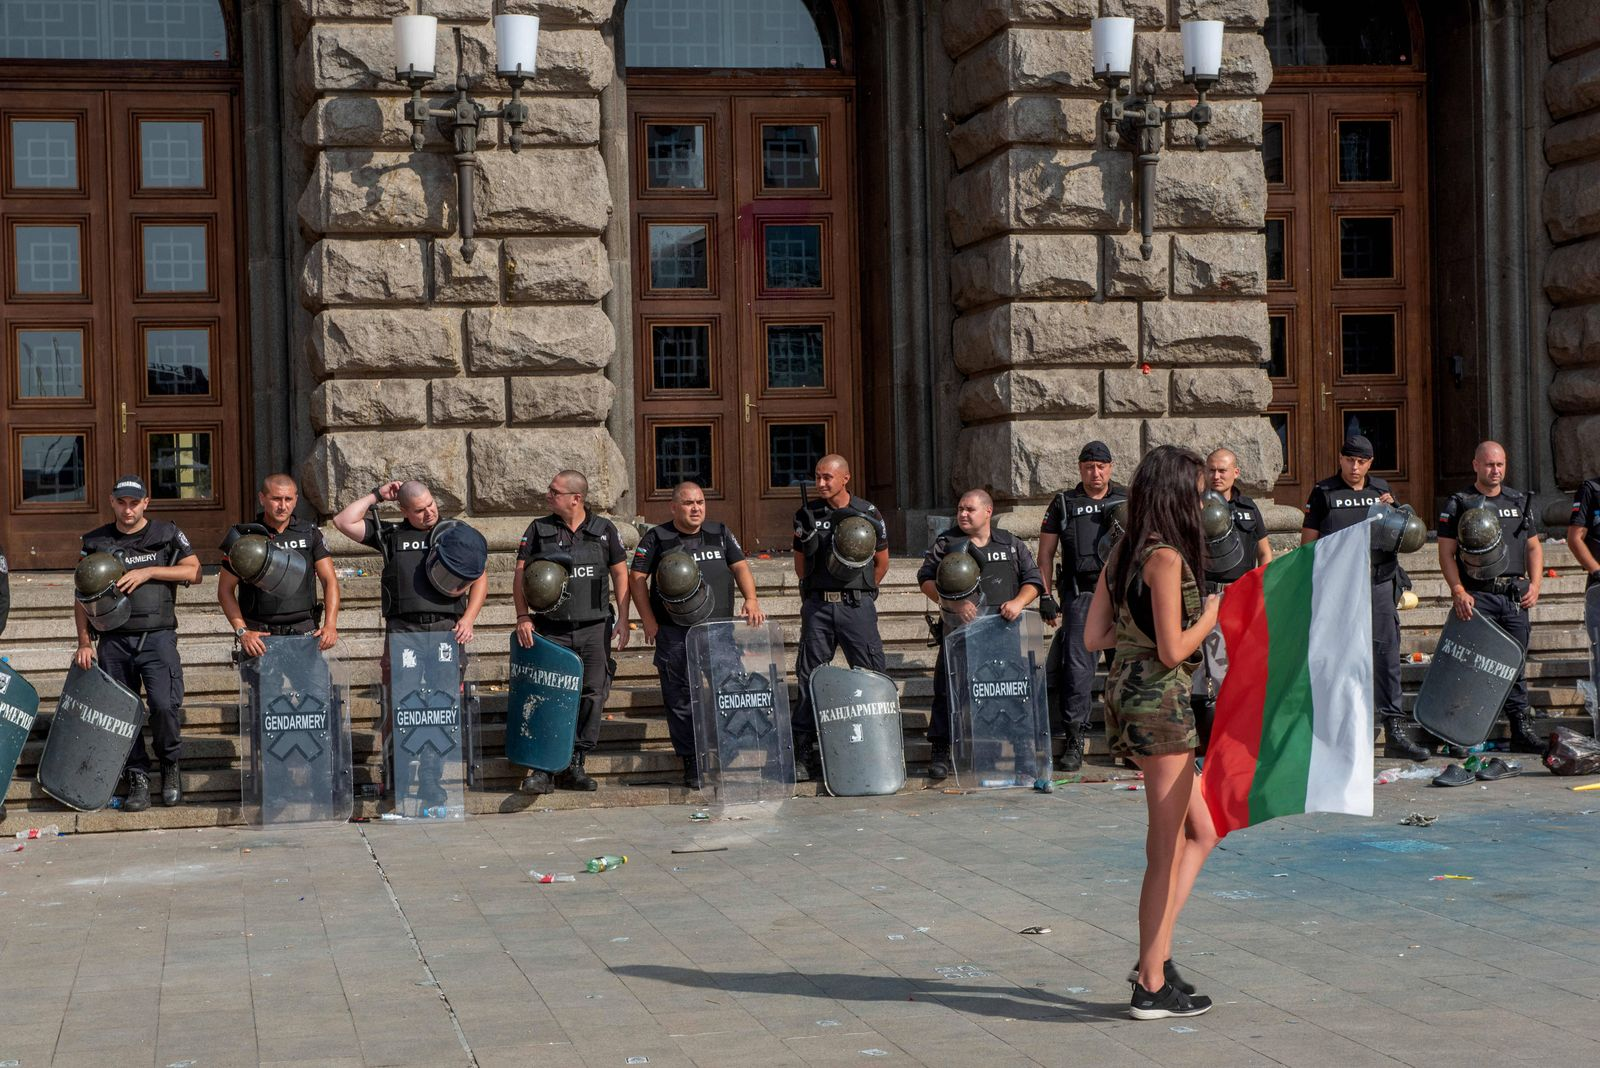 September 2, 2020, Sofia, Bulgaria: Riot police stand on guard facing off with a female protester during the demonstrati